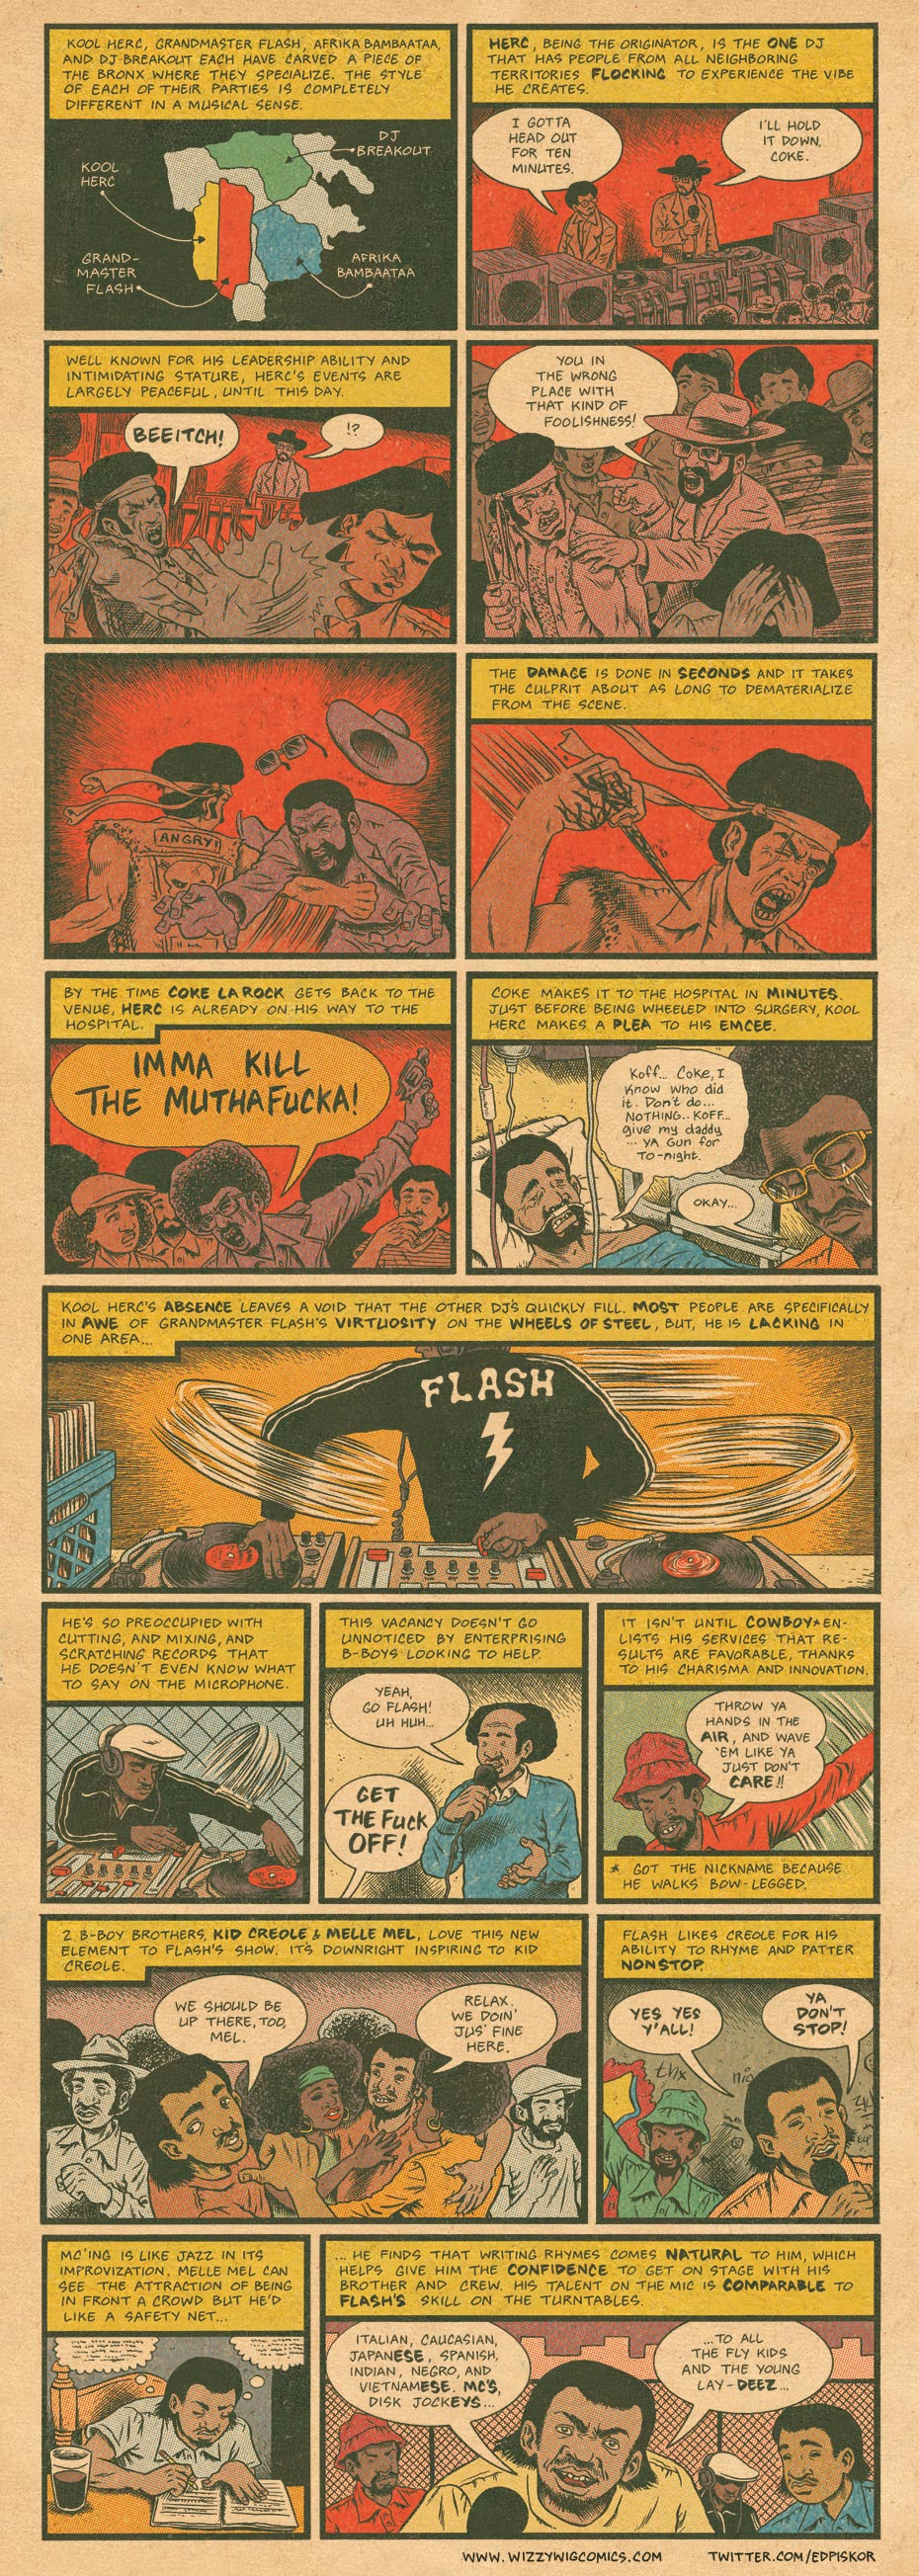 Hip Hop strip...